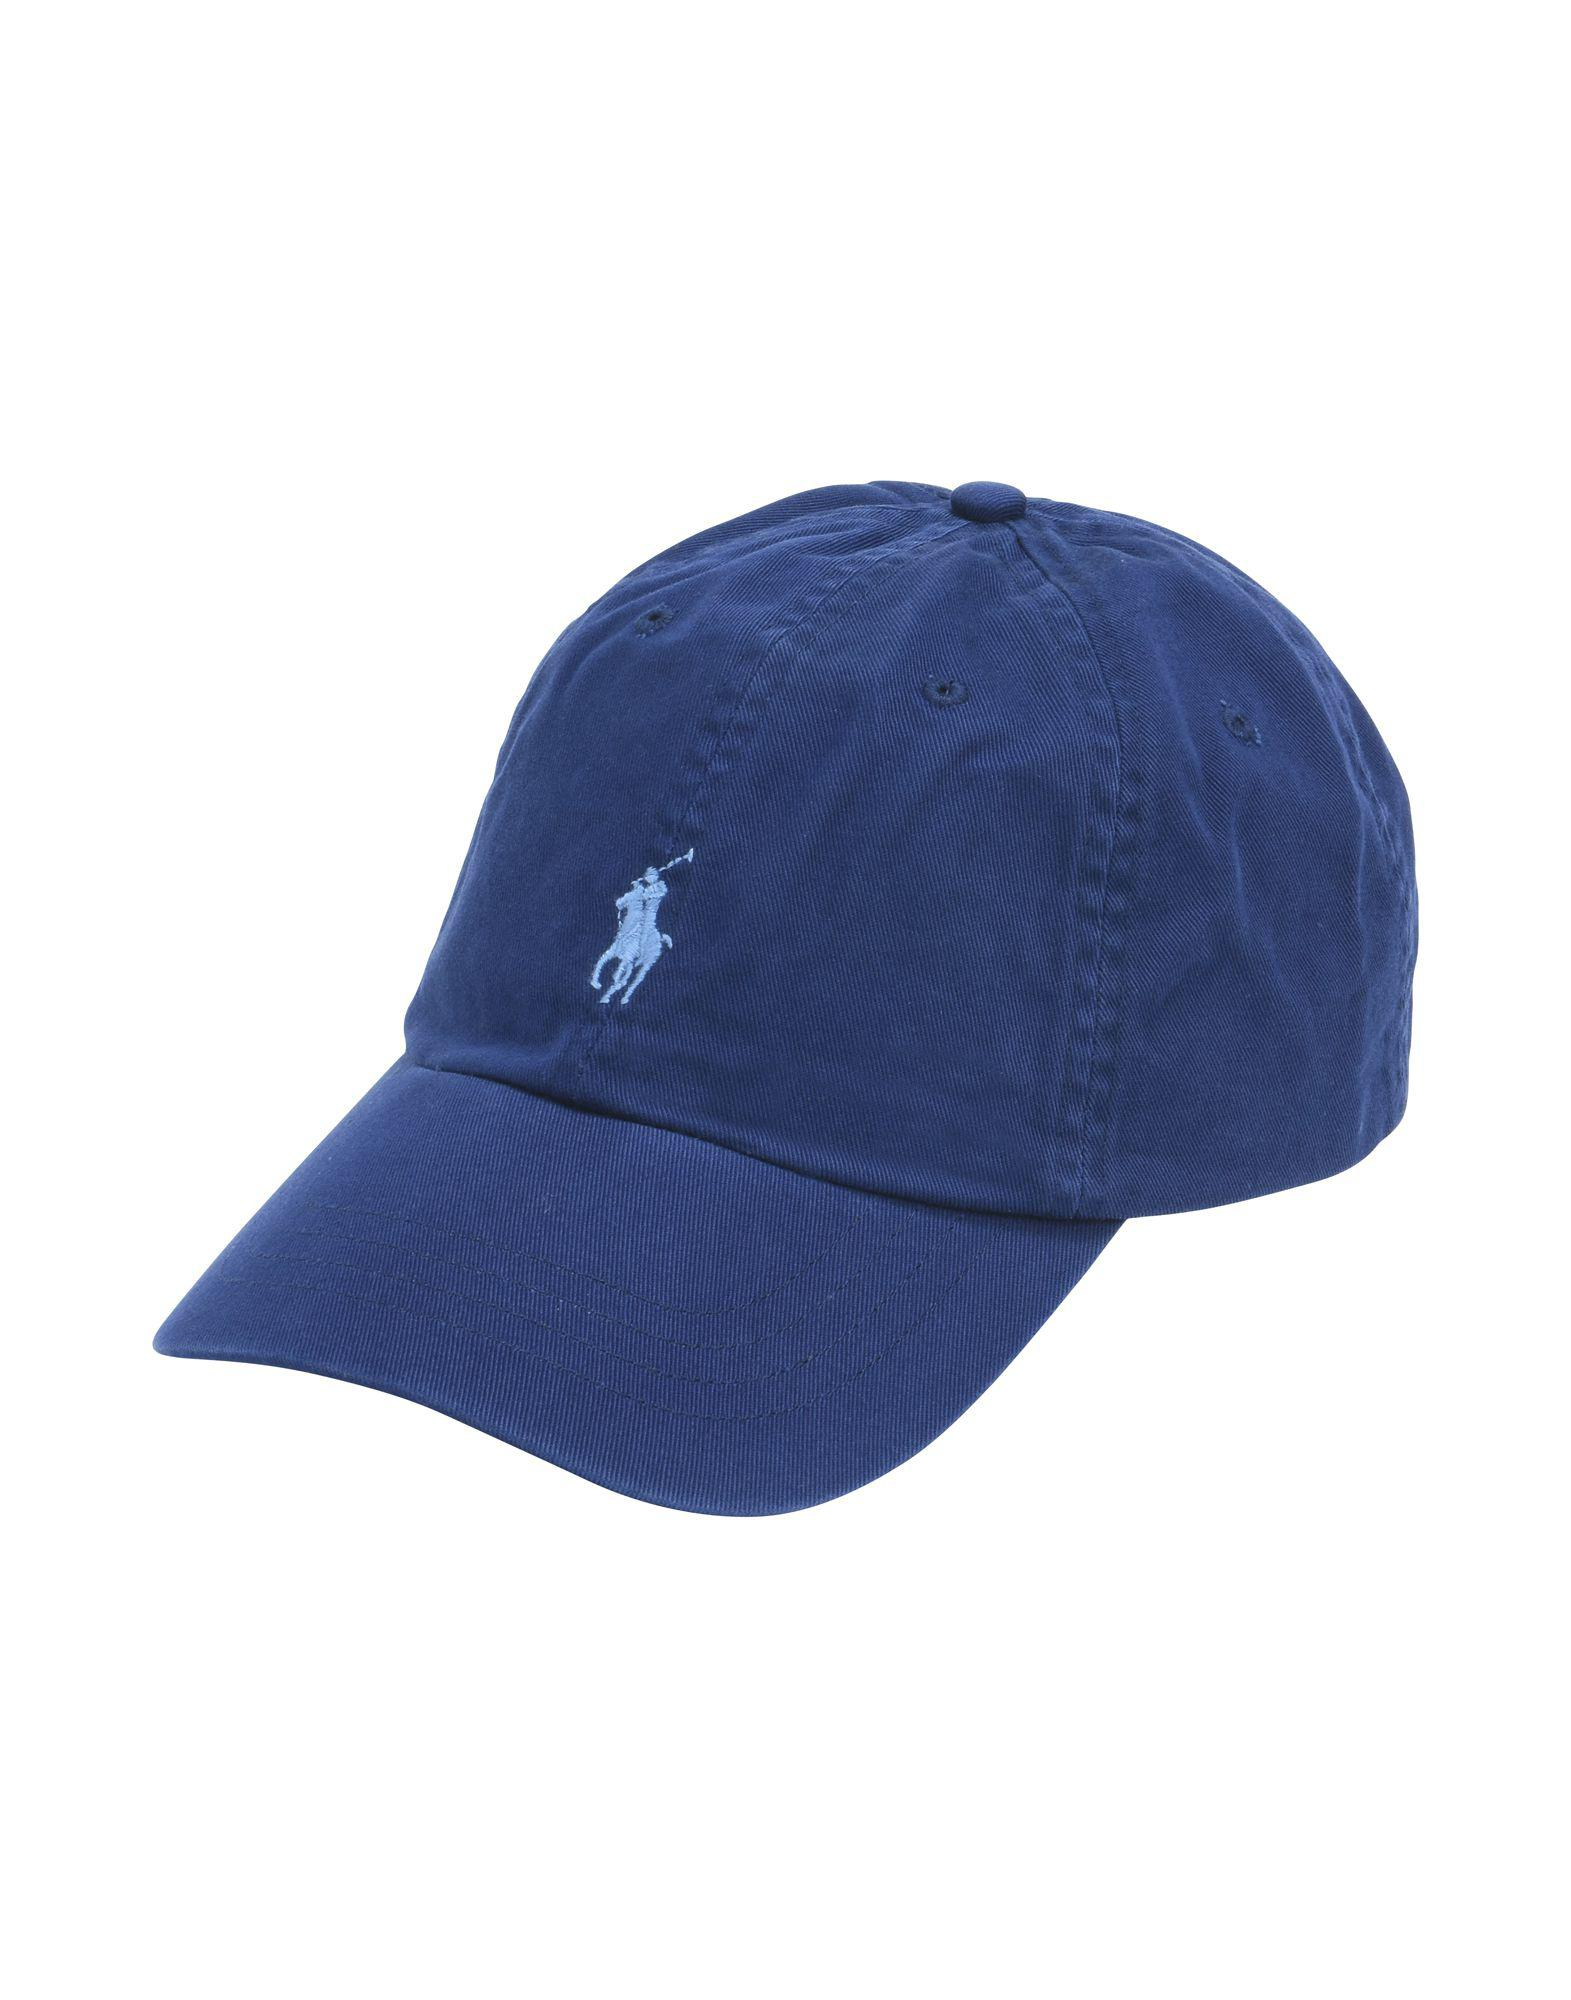 9619157dfdaf8 Polo Ralph Lauren Hat in Blue for Men - Lyst